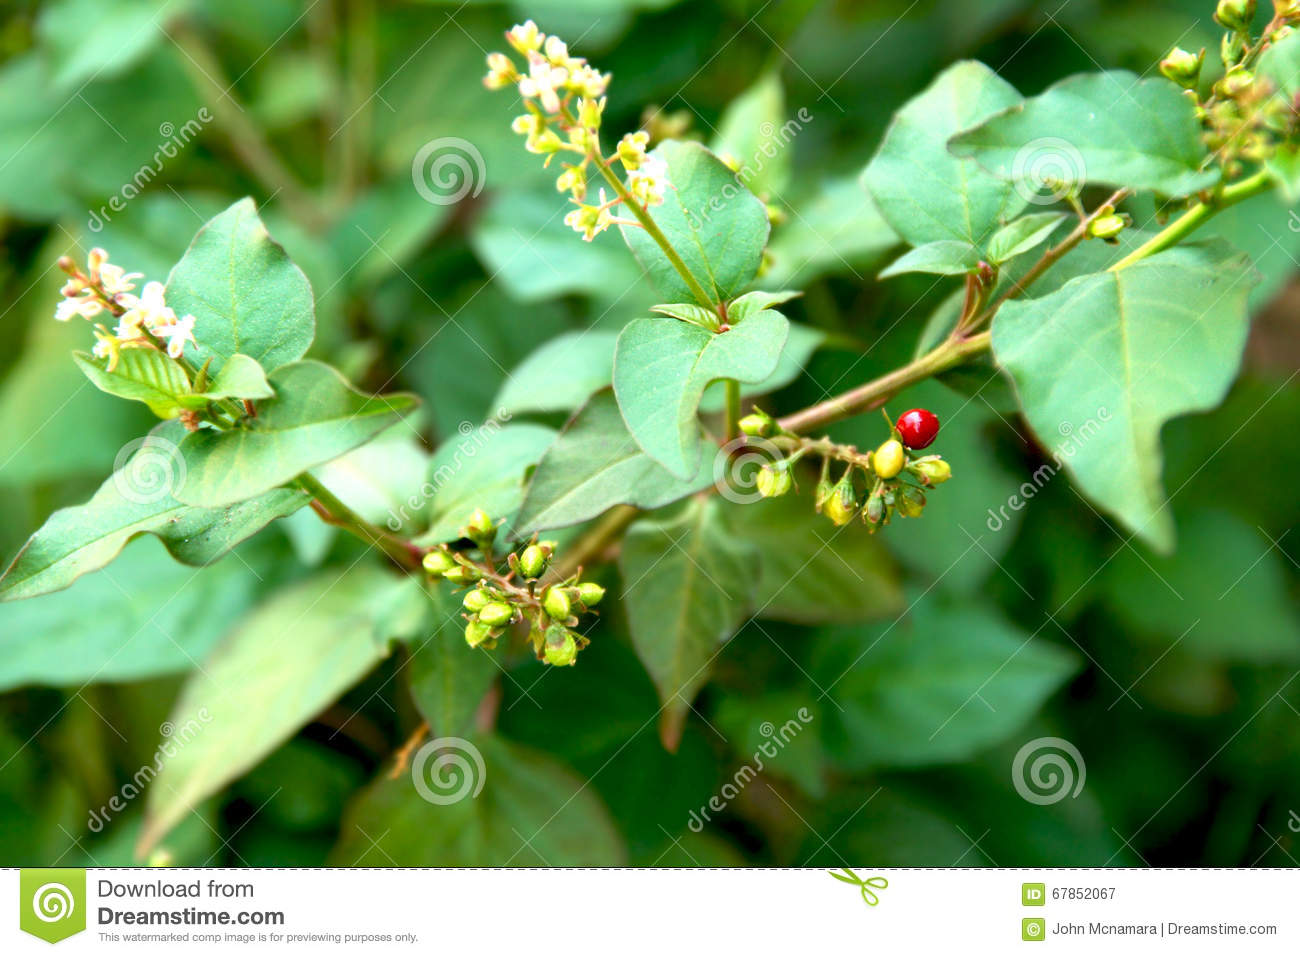 Flowering green plant with red berry like balls stock image image flowering green plant with red berry like balls mightylinksfo